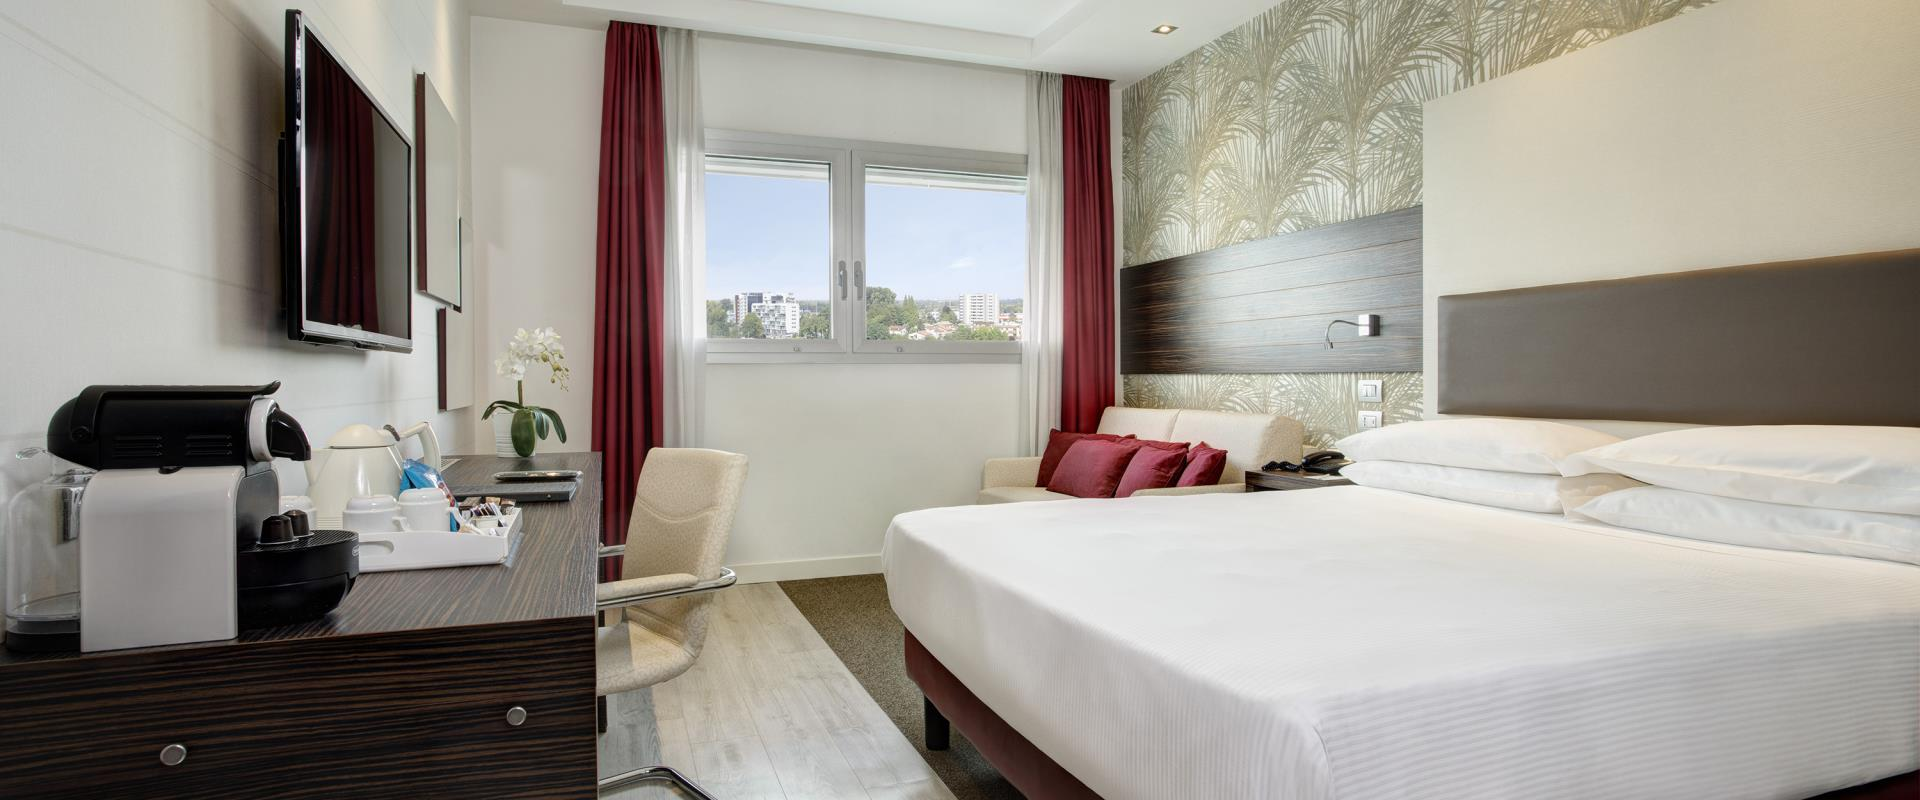 BW Plus Quid Hotel Venice - Rooms - Executive room with sofa-bed